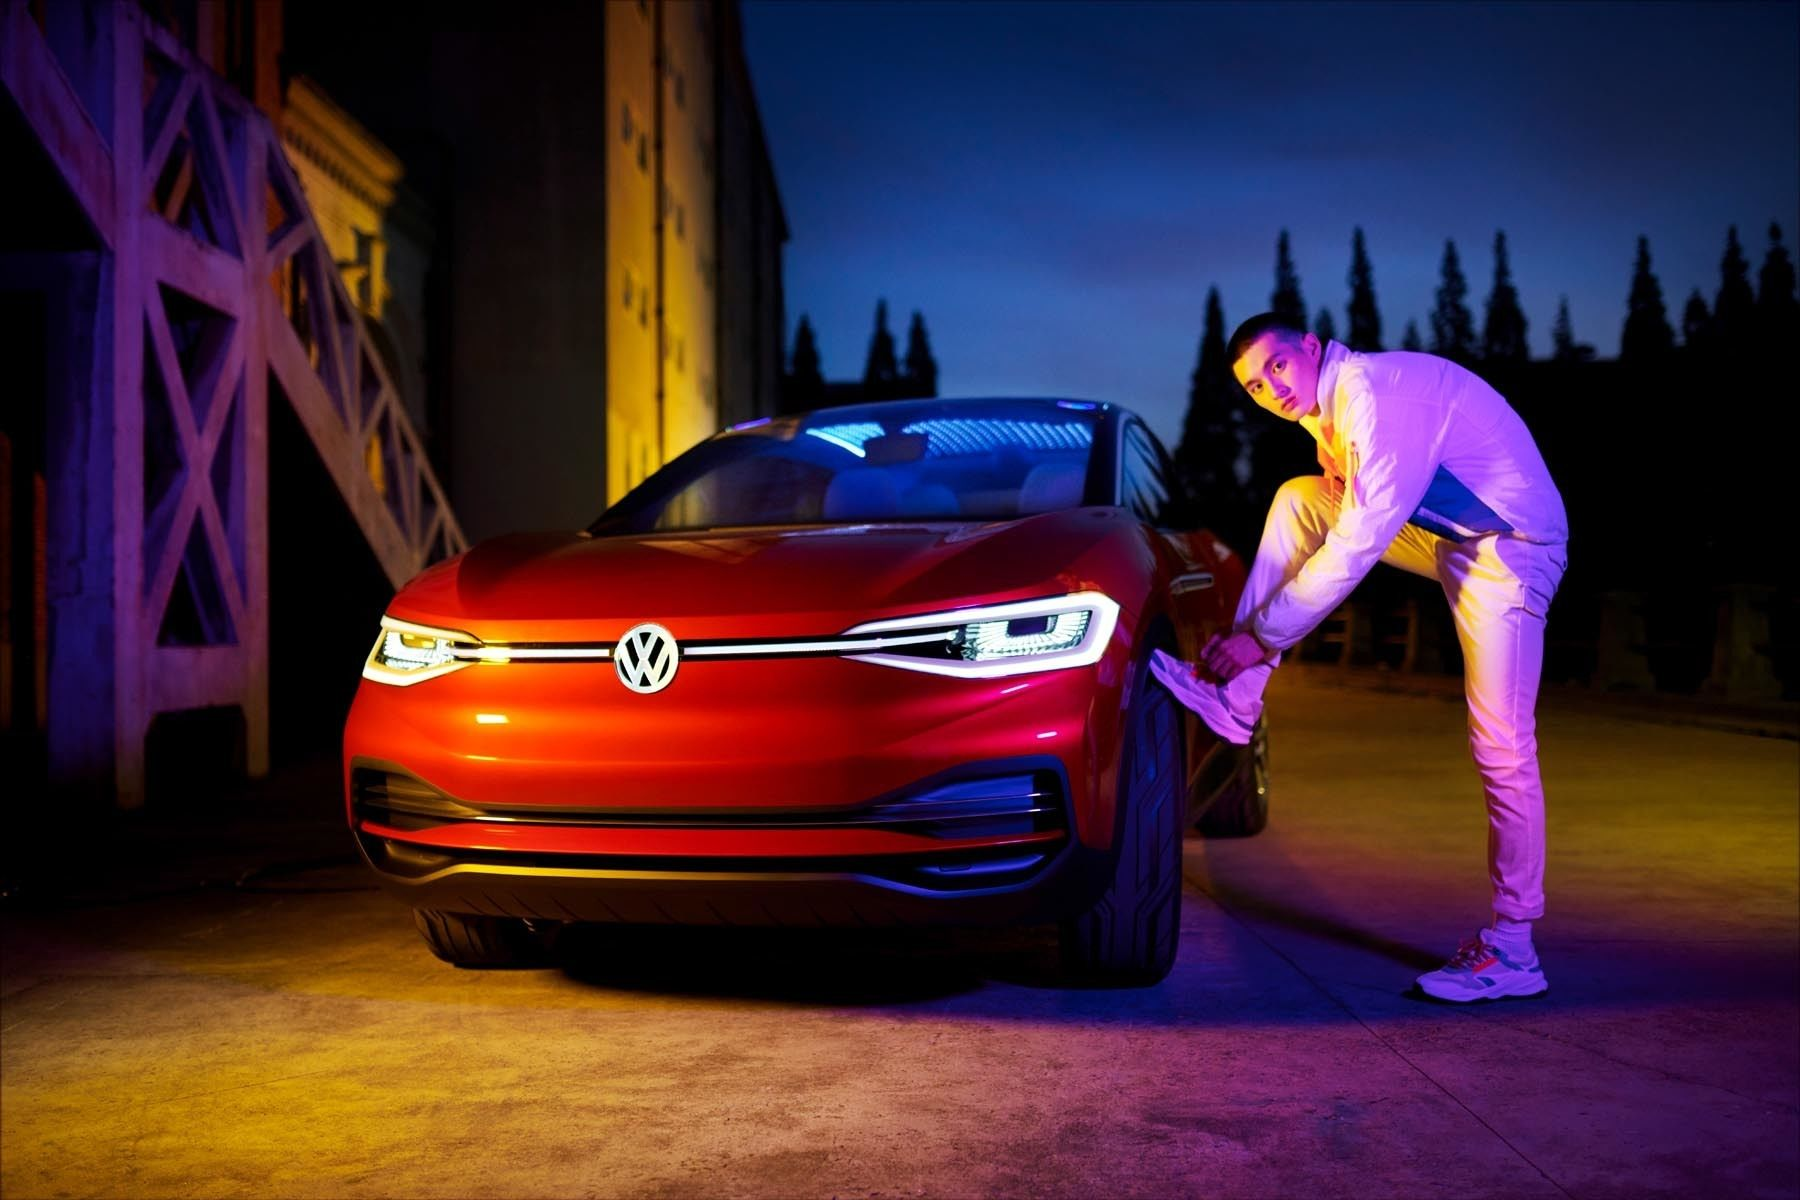 UWE DUETTMANN FOR VW